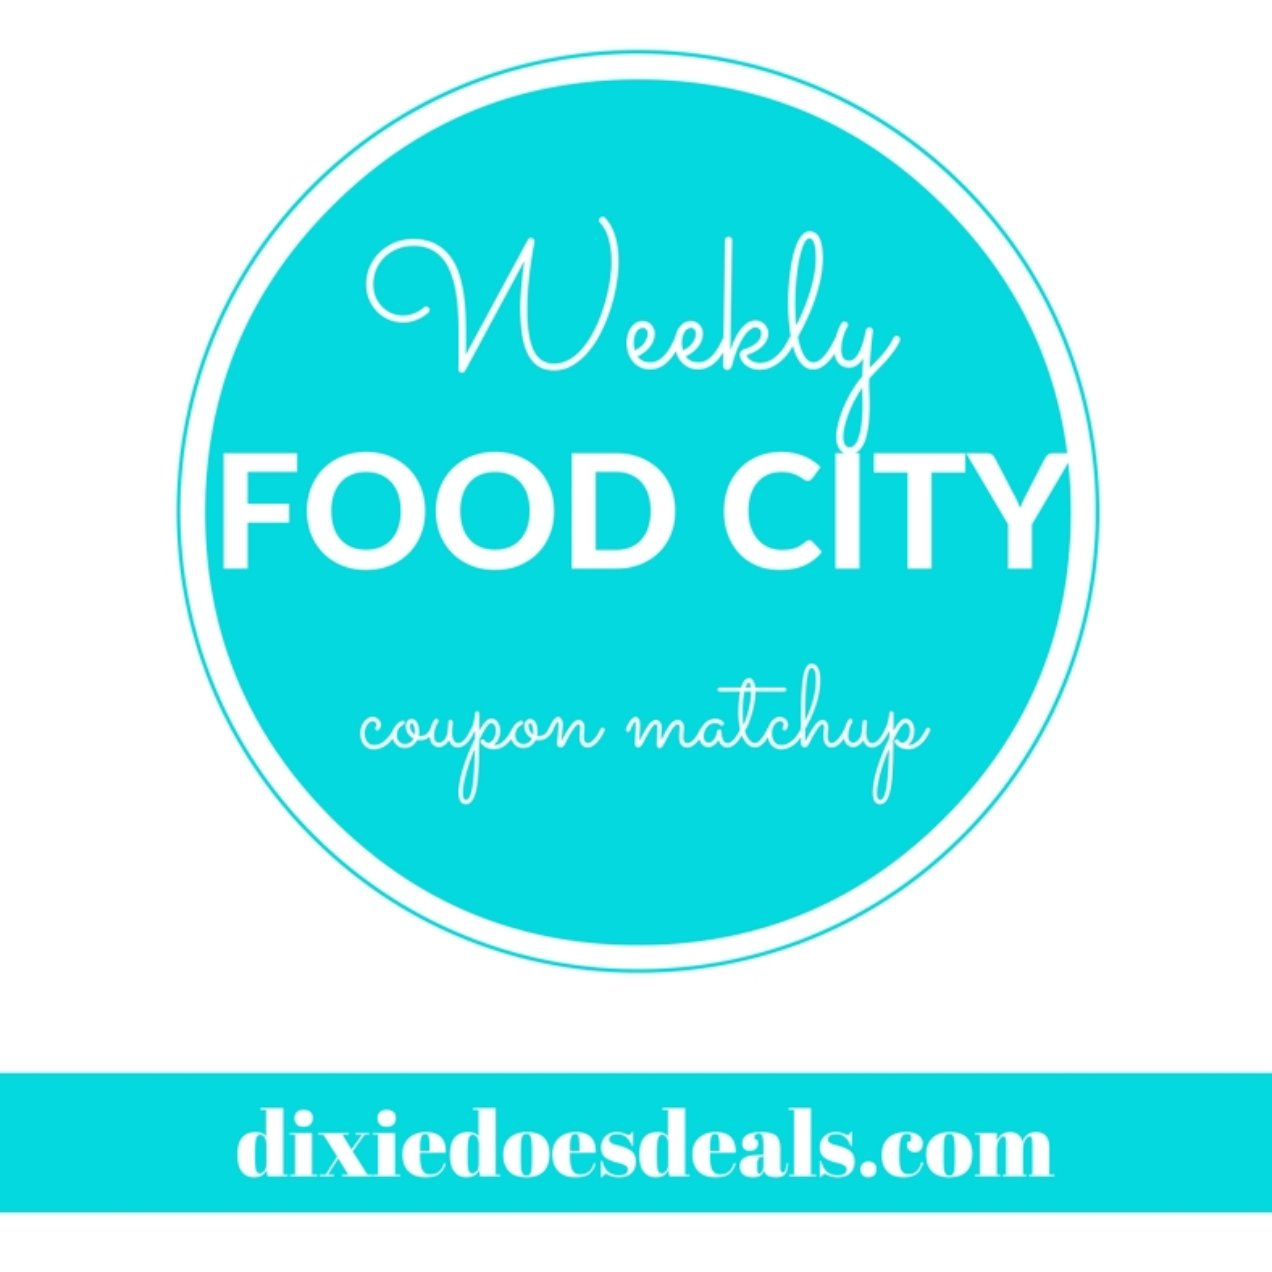 Food City Best Deals 10/4 – 10/10 – Save Big On Canned Veggies, Cereal and More!